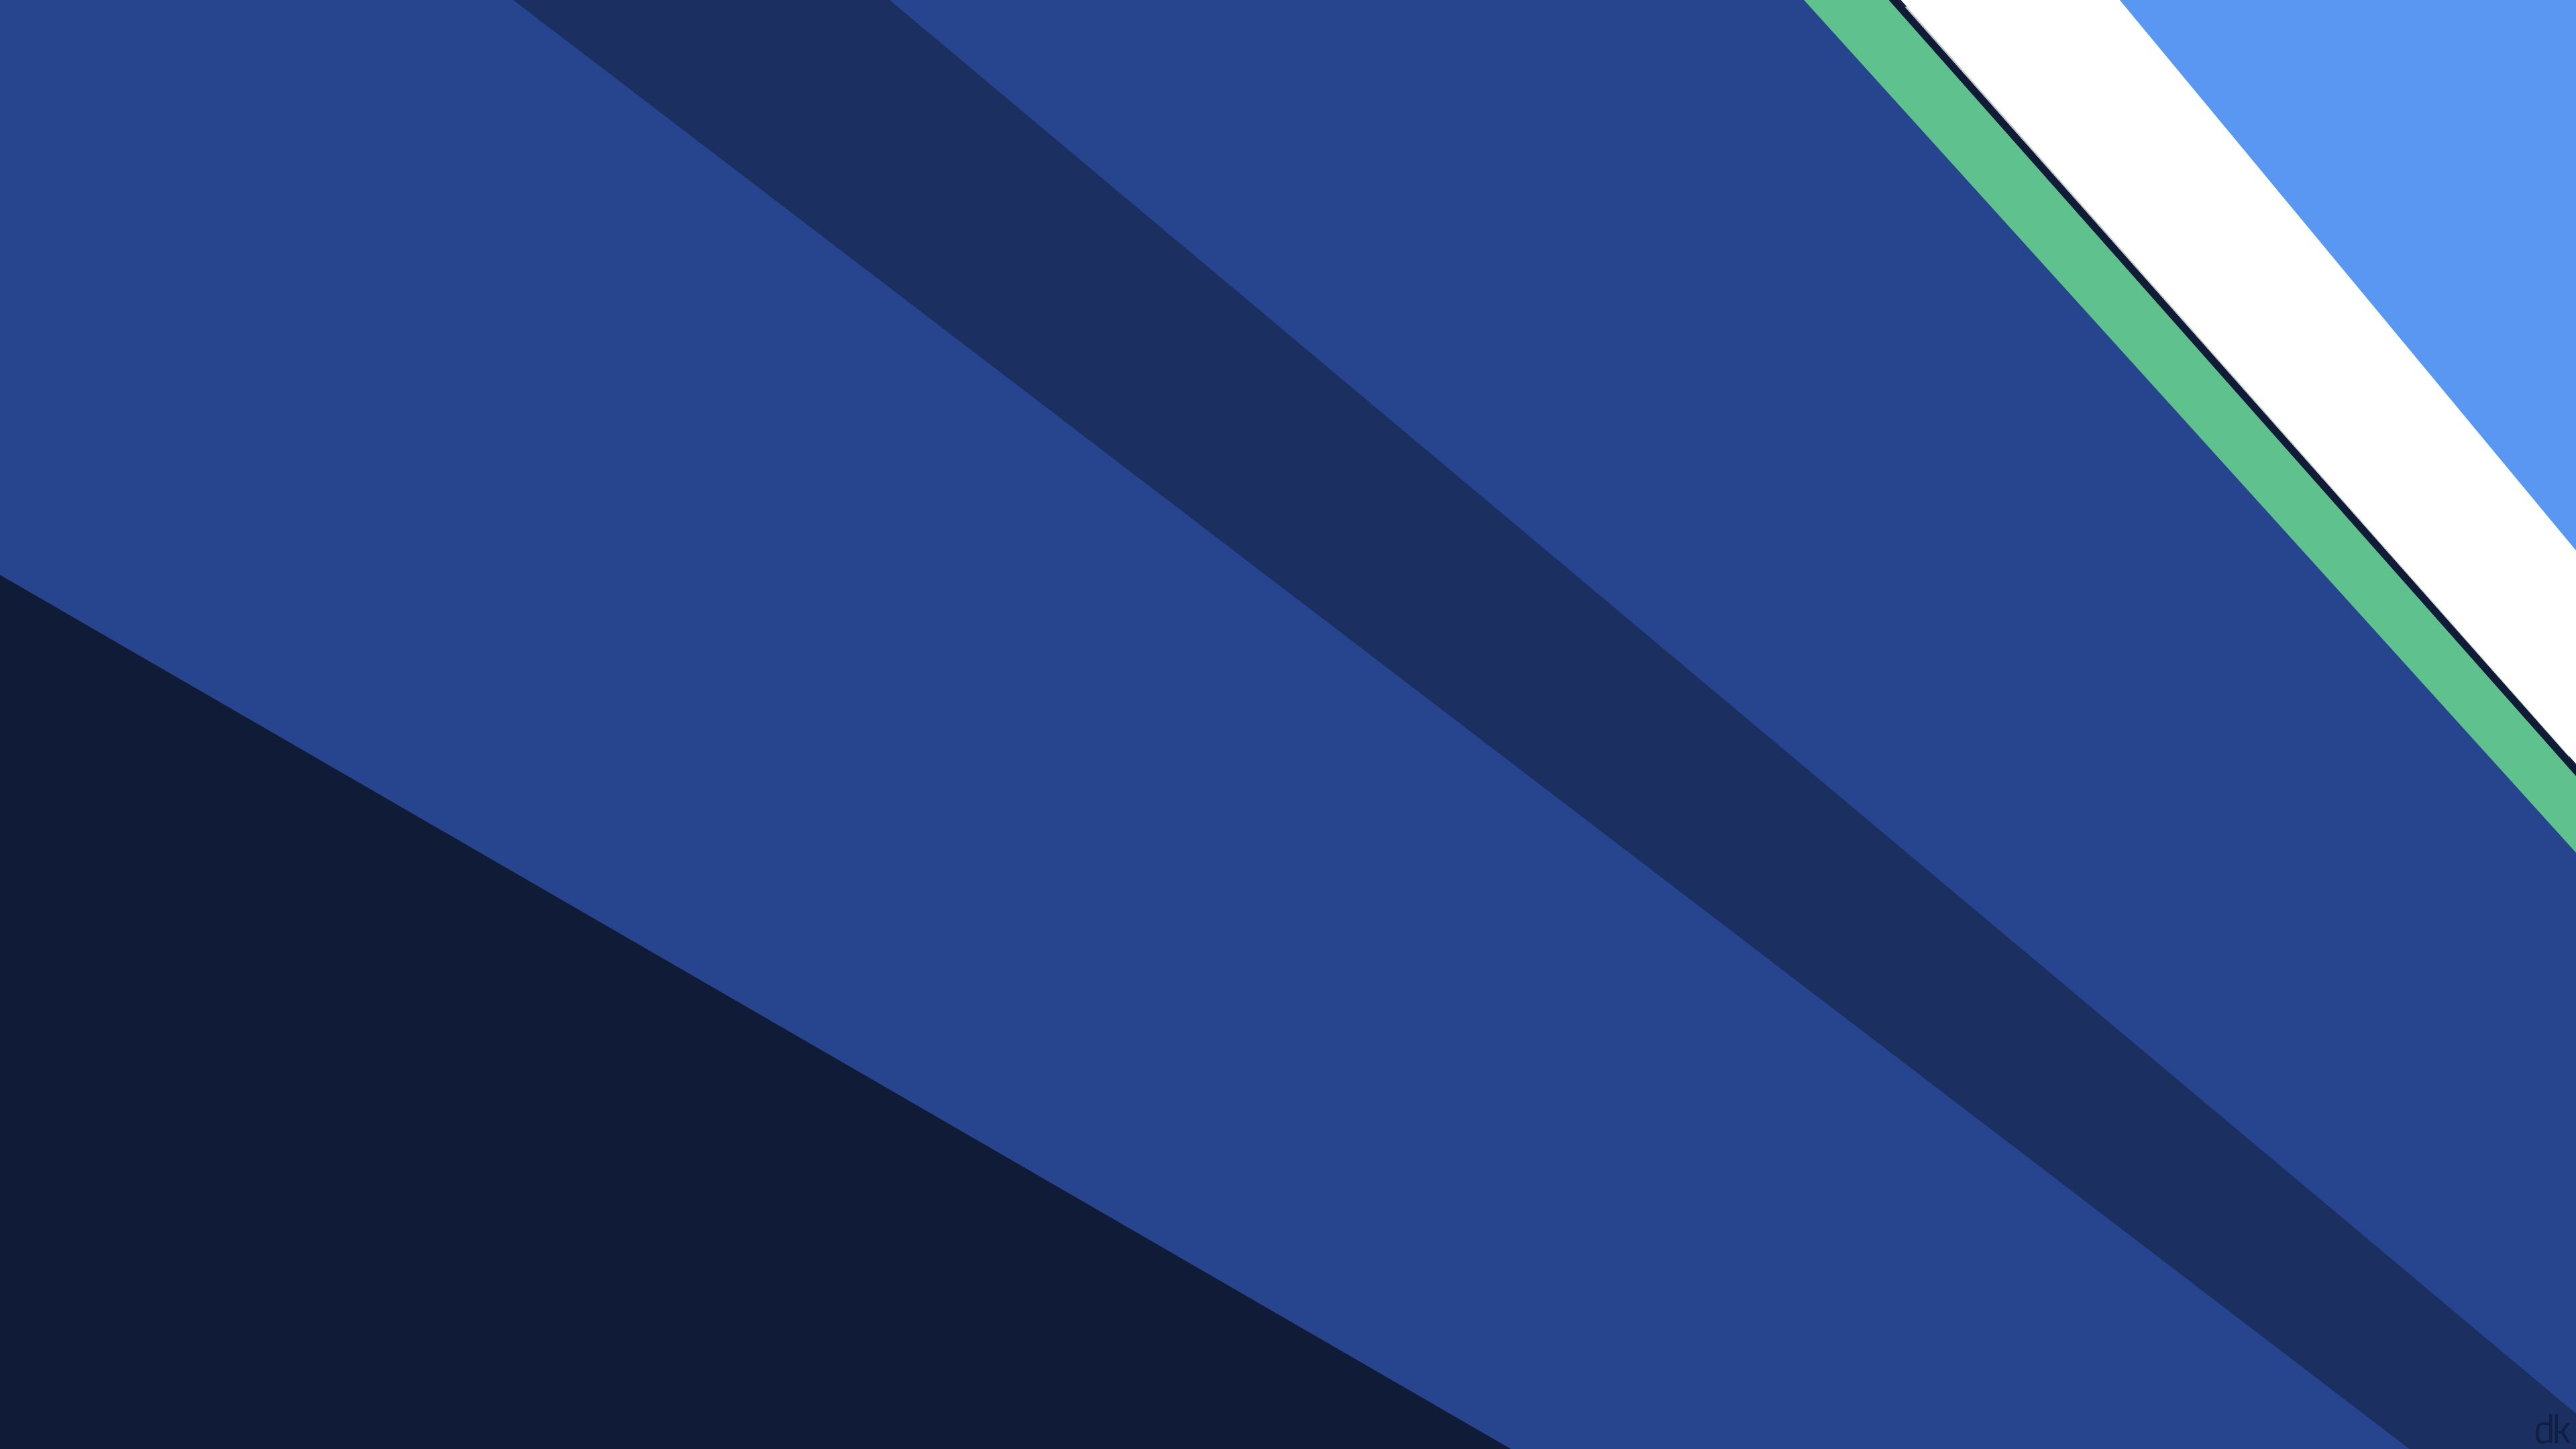 minimal flat android l wallpaper moonshine 4k by dakoder